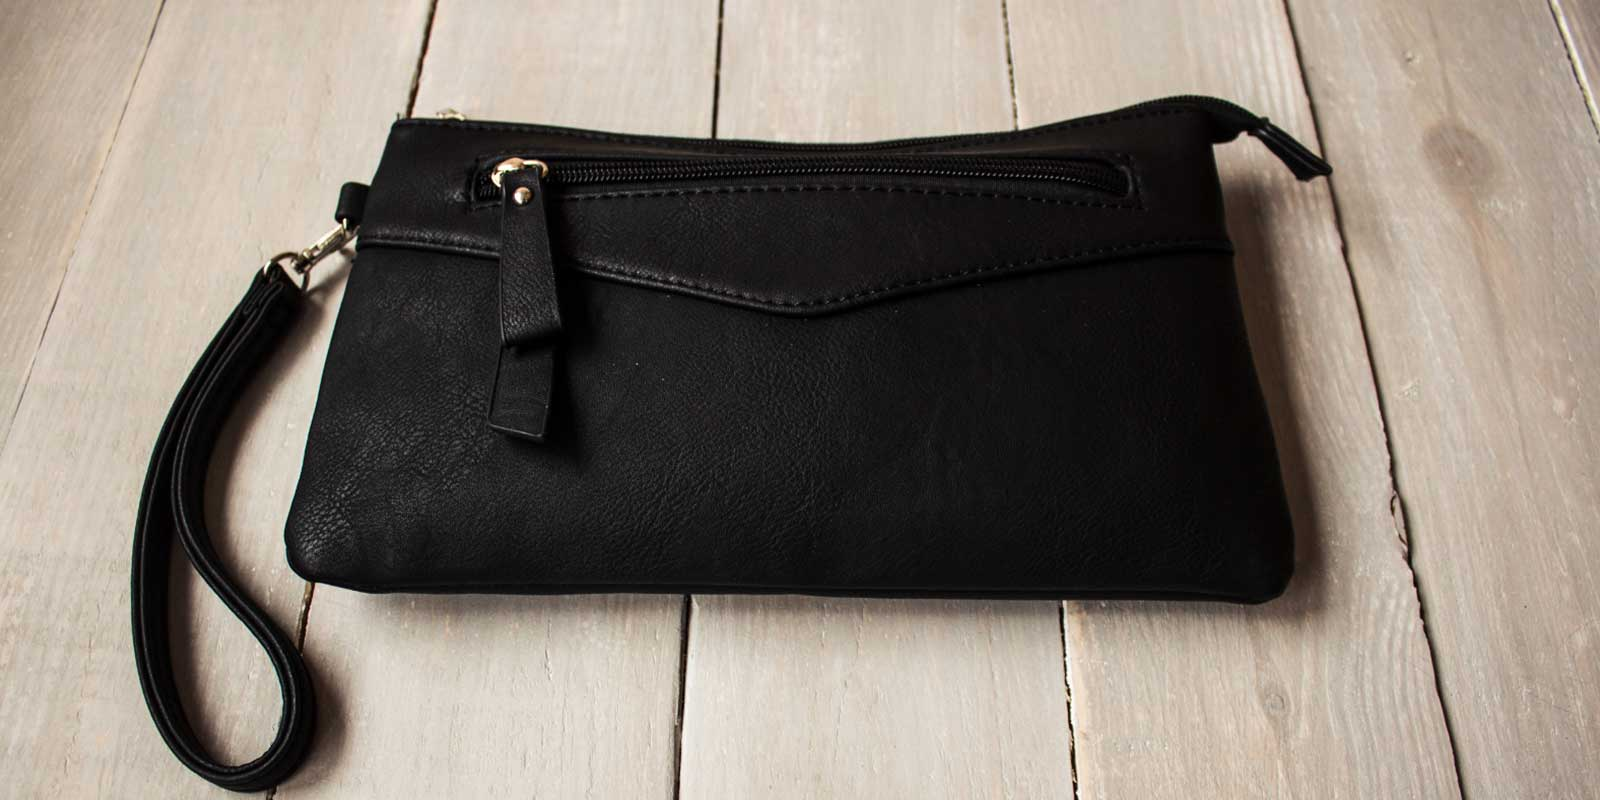 What Are Clutch Bags Used For?